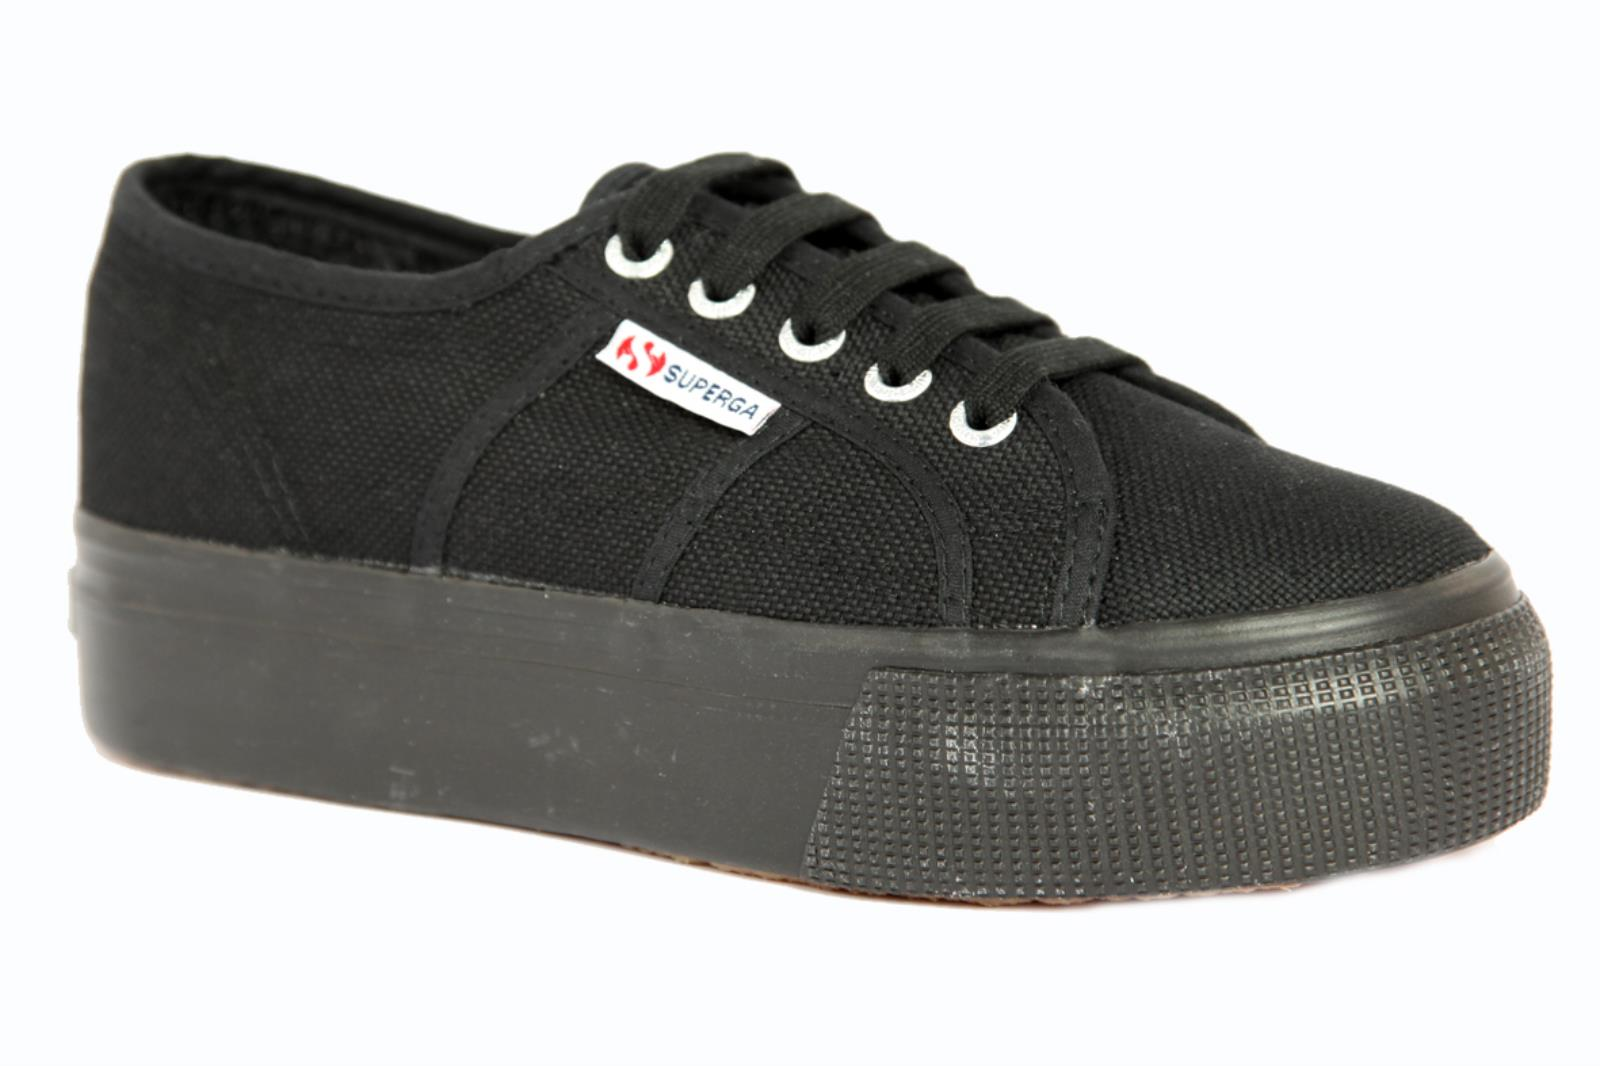 SCARPE SUPERGA 2790ACOTW LINEA UP AND DOWN S0001L0996 DA DONNA IN TELA DI COLOR